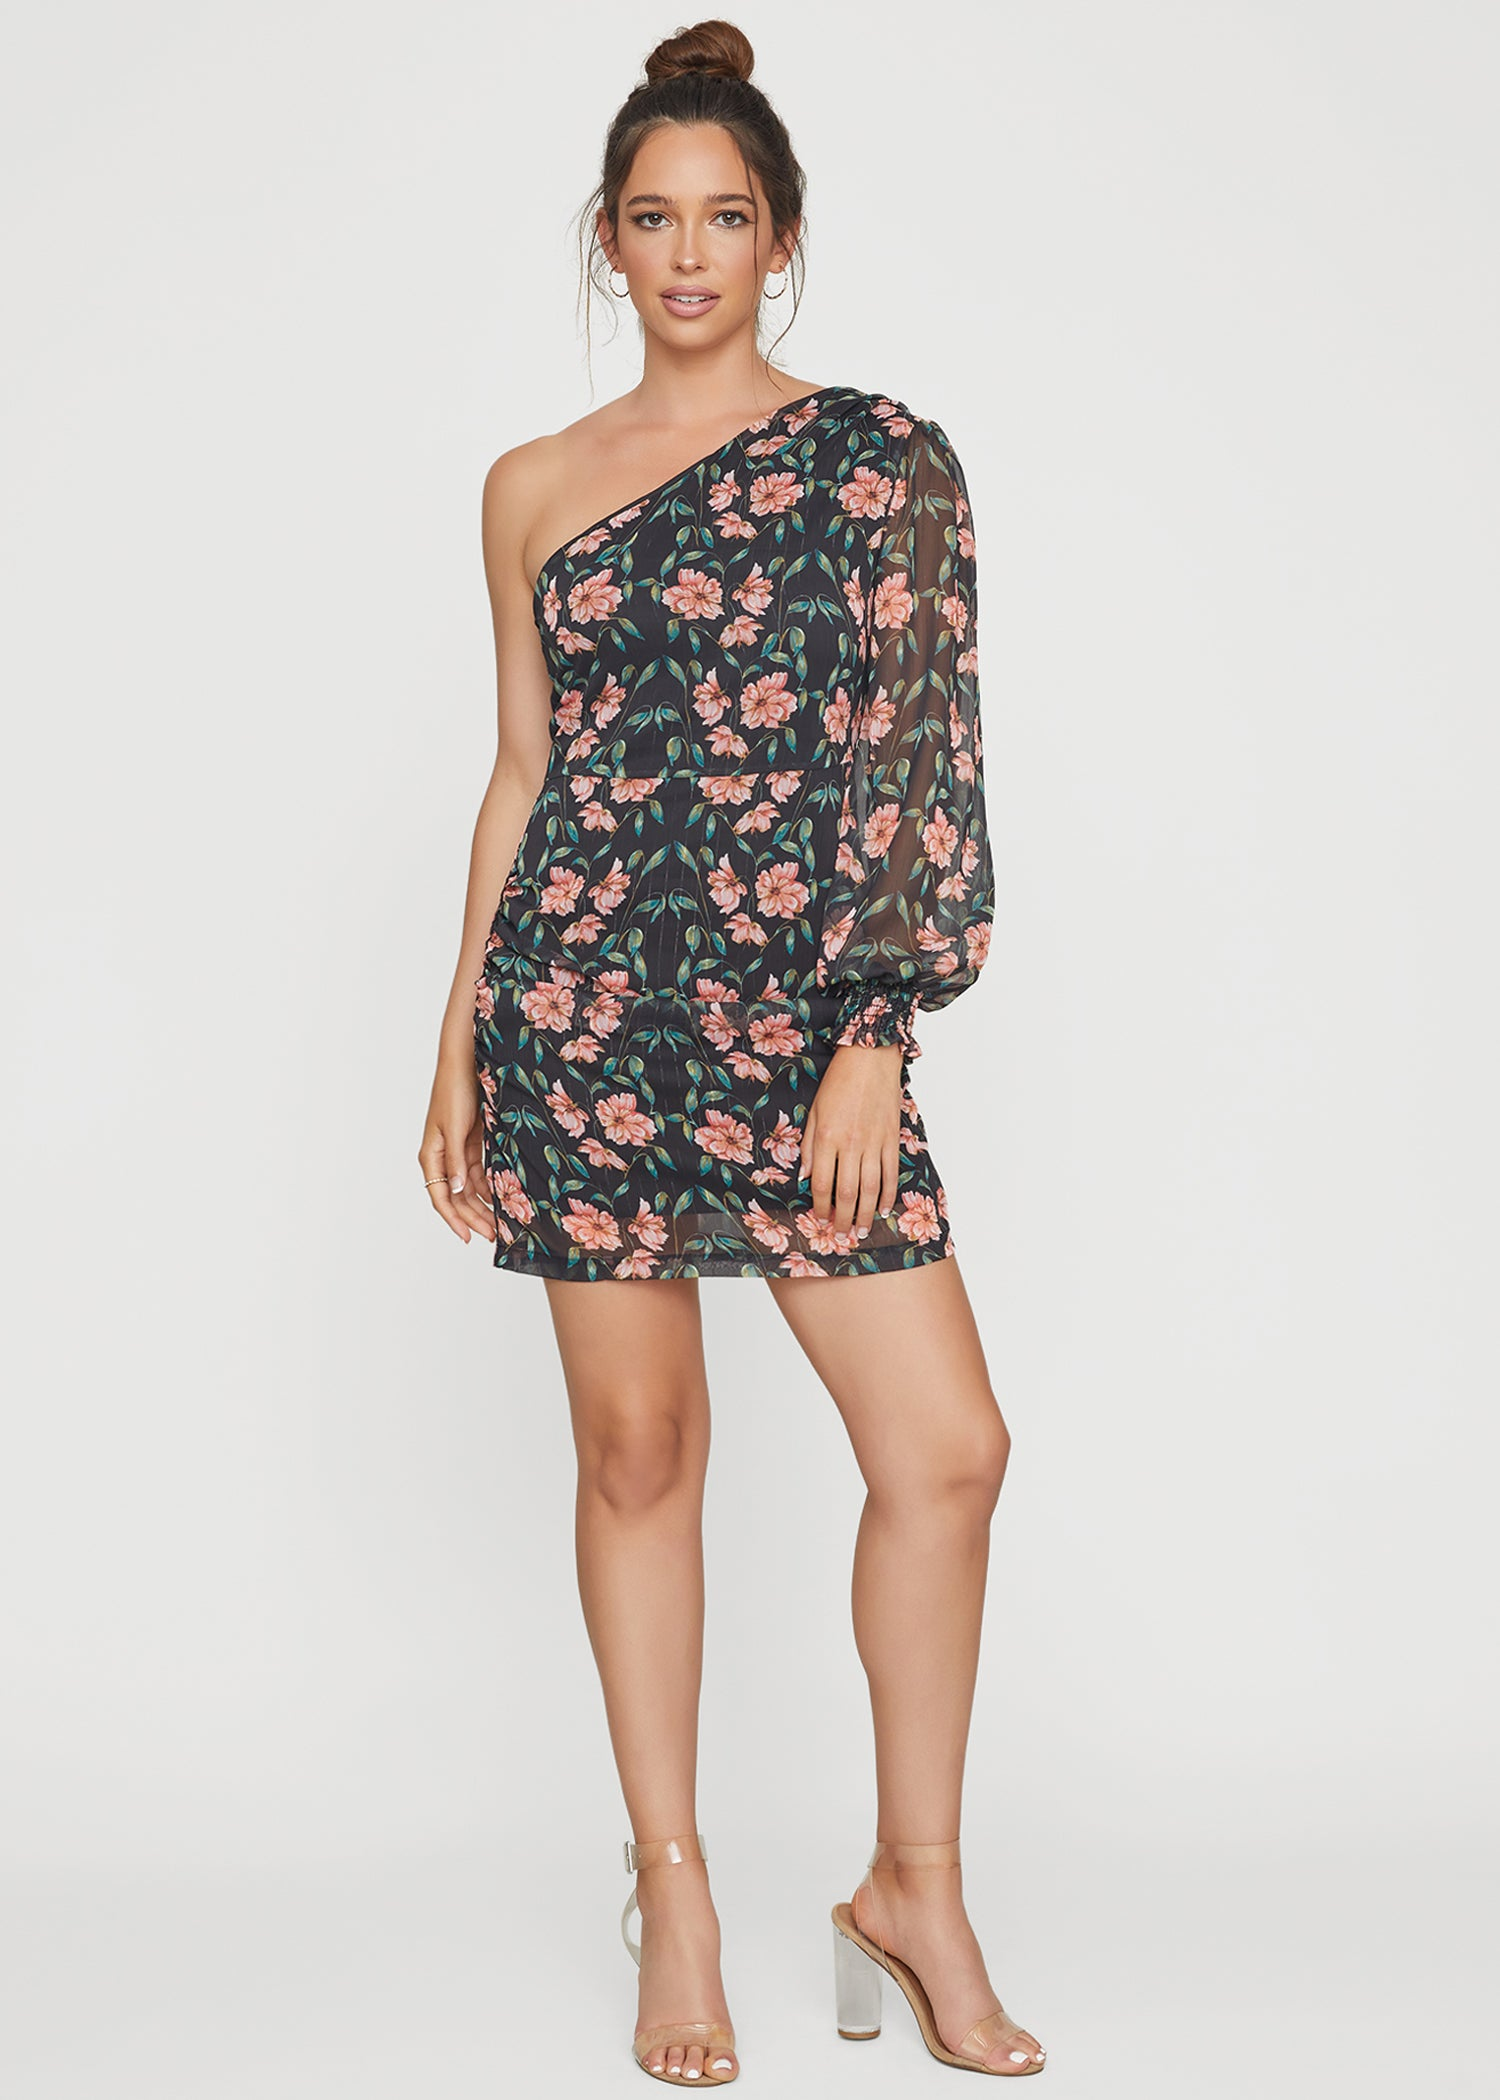 Chasing The Sun One Shoulder Mini Dress